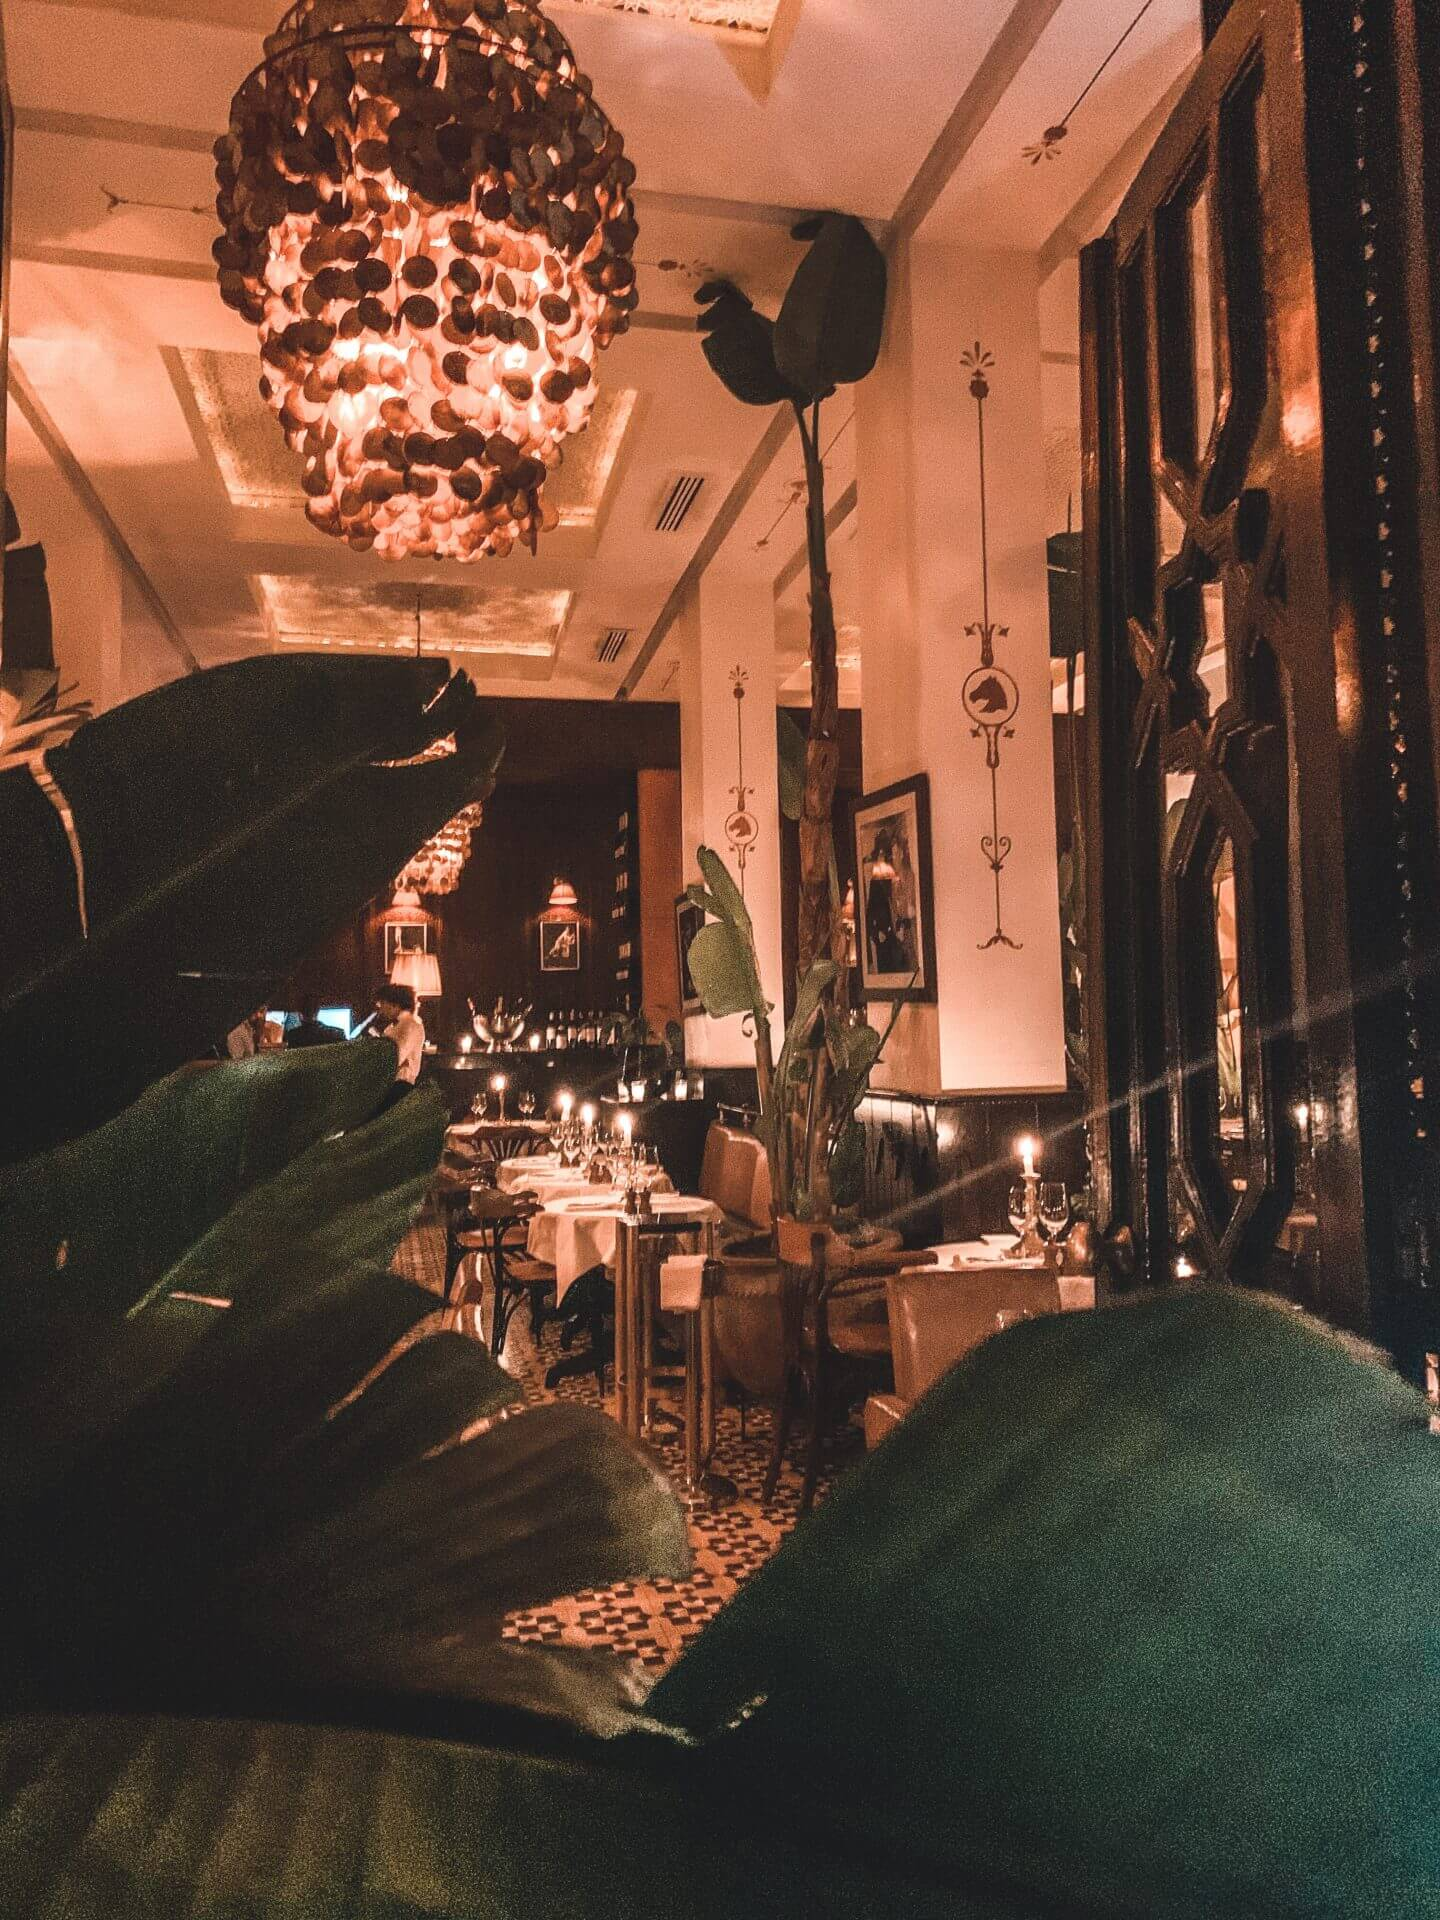 Le Palace - Top 10 places to eat in Marrakech